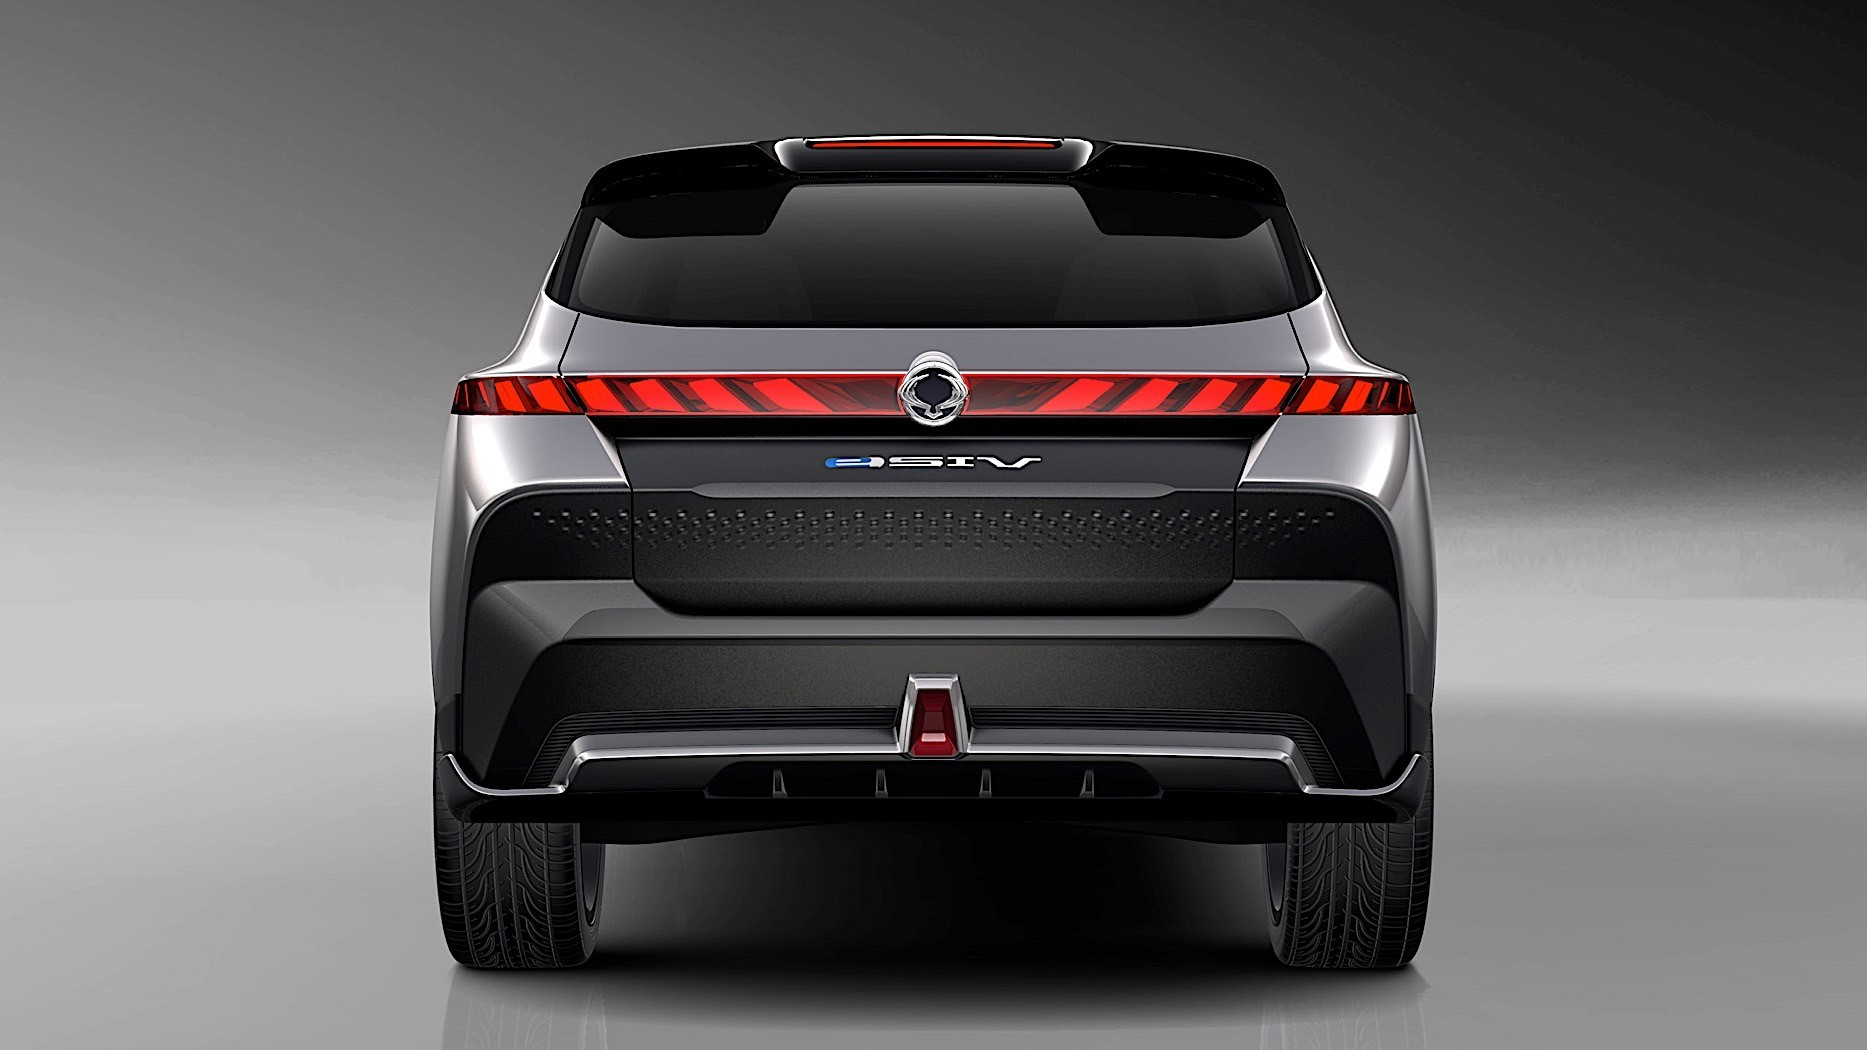 Tonka Truck in addition Ssangyong Korando Spied Takes Inspiration From E Siv Concept besides Geiser Raptor Trophy Truck further Towing Chapter further mercial Auto Insurance. on towing chapter